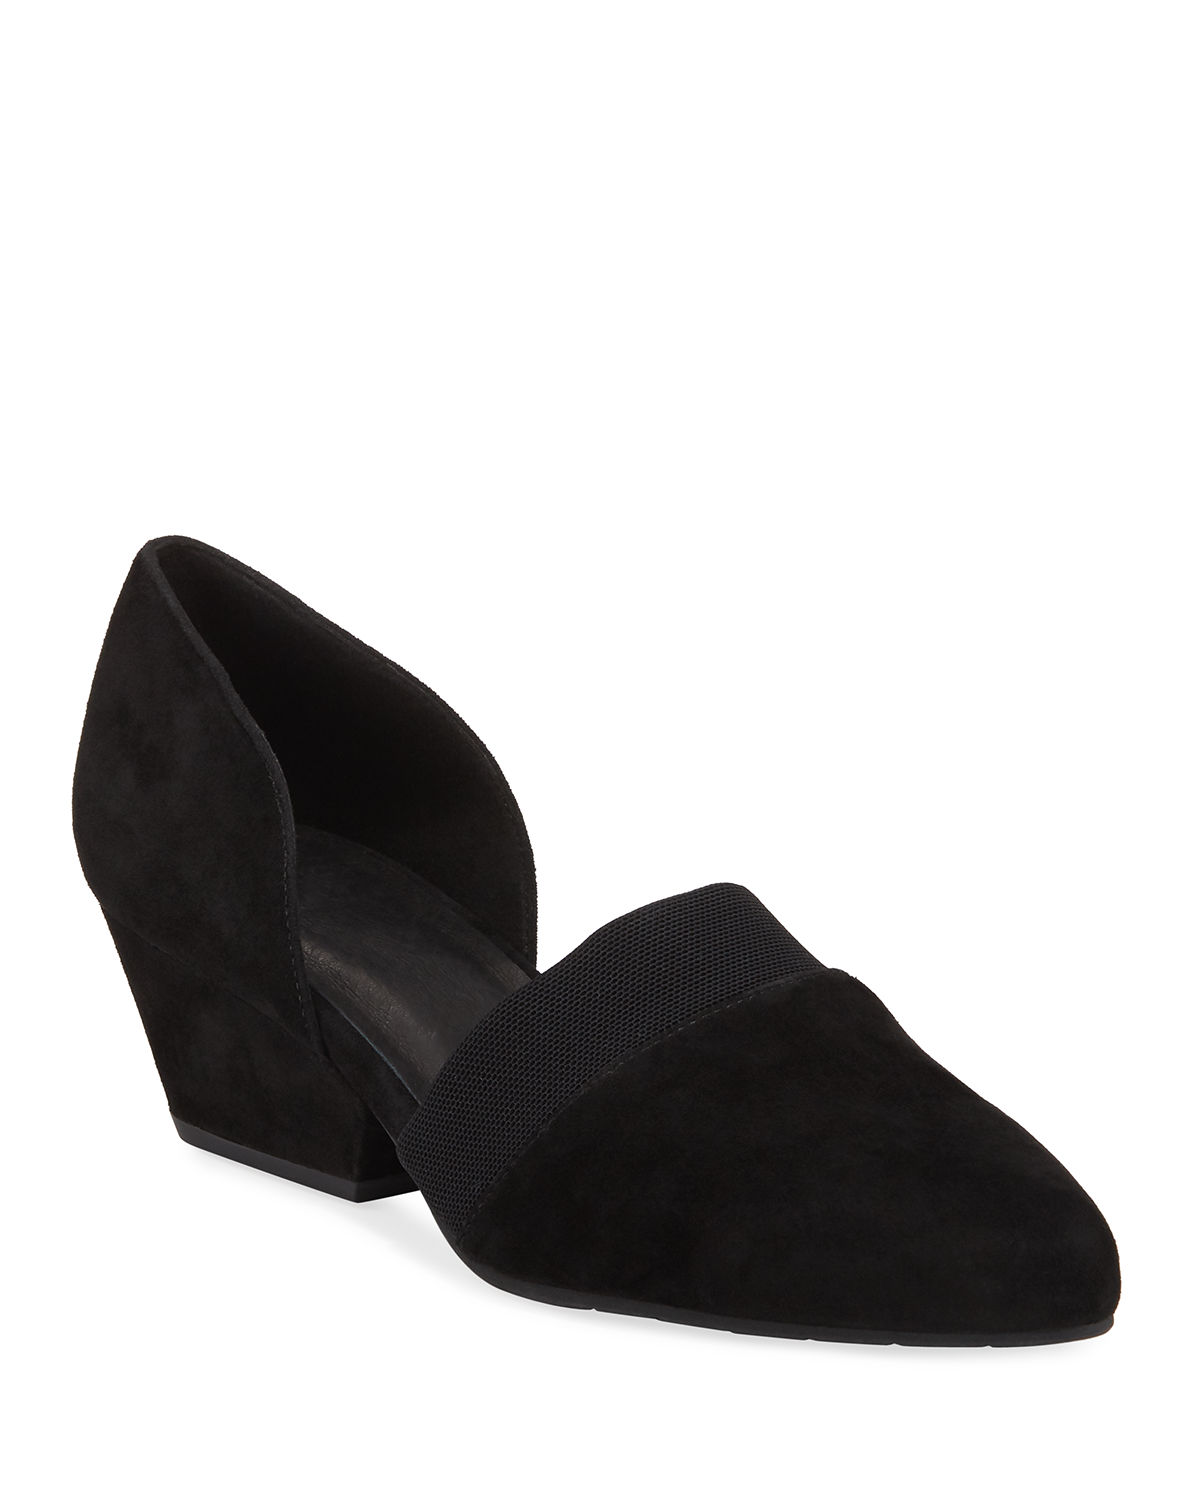 Hilly Easy Suede Demi-Wedge Pumps